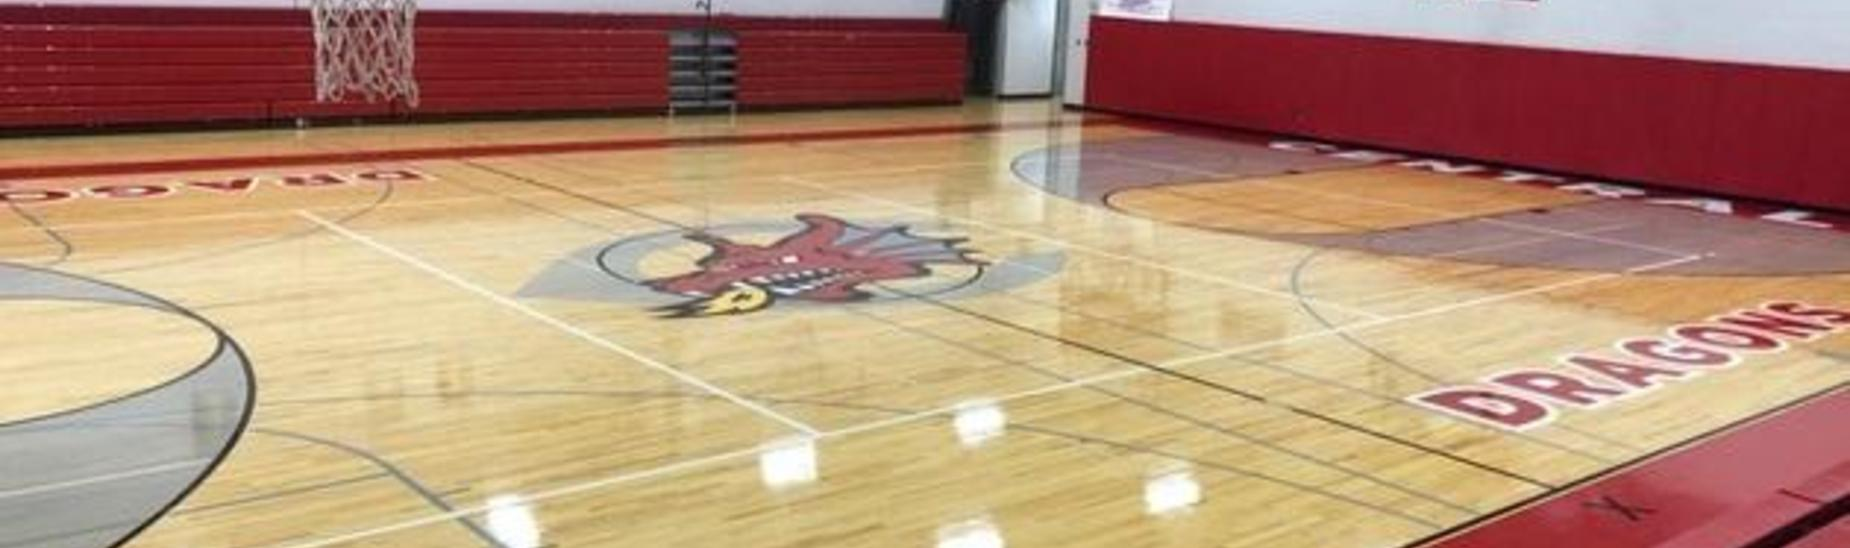 CHS Gymnasium renovation completed 1-10-19.  Thanks to everyone that helped make this possible!